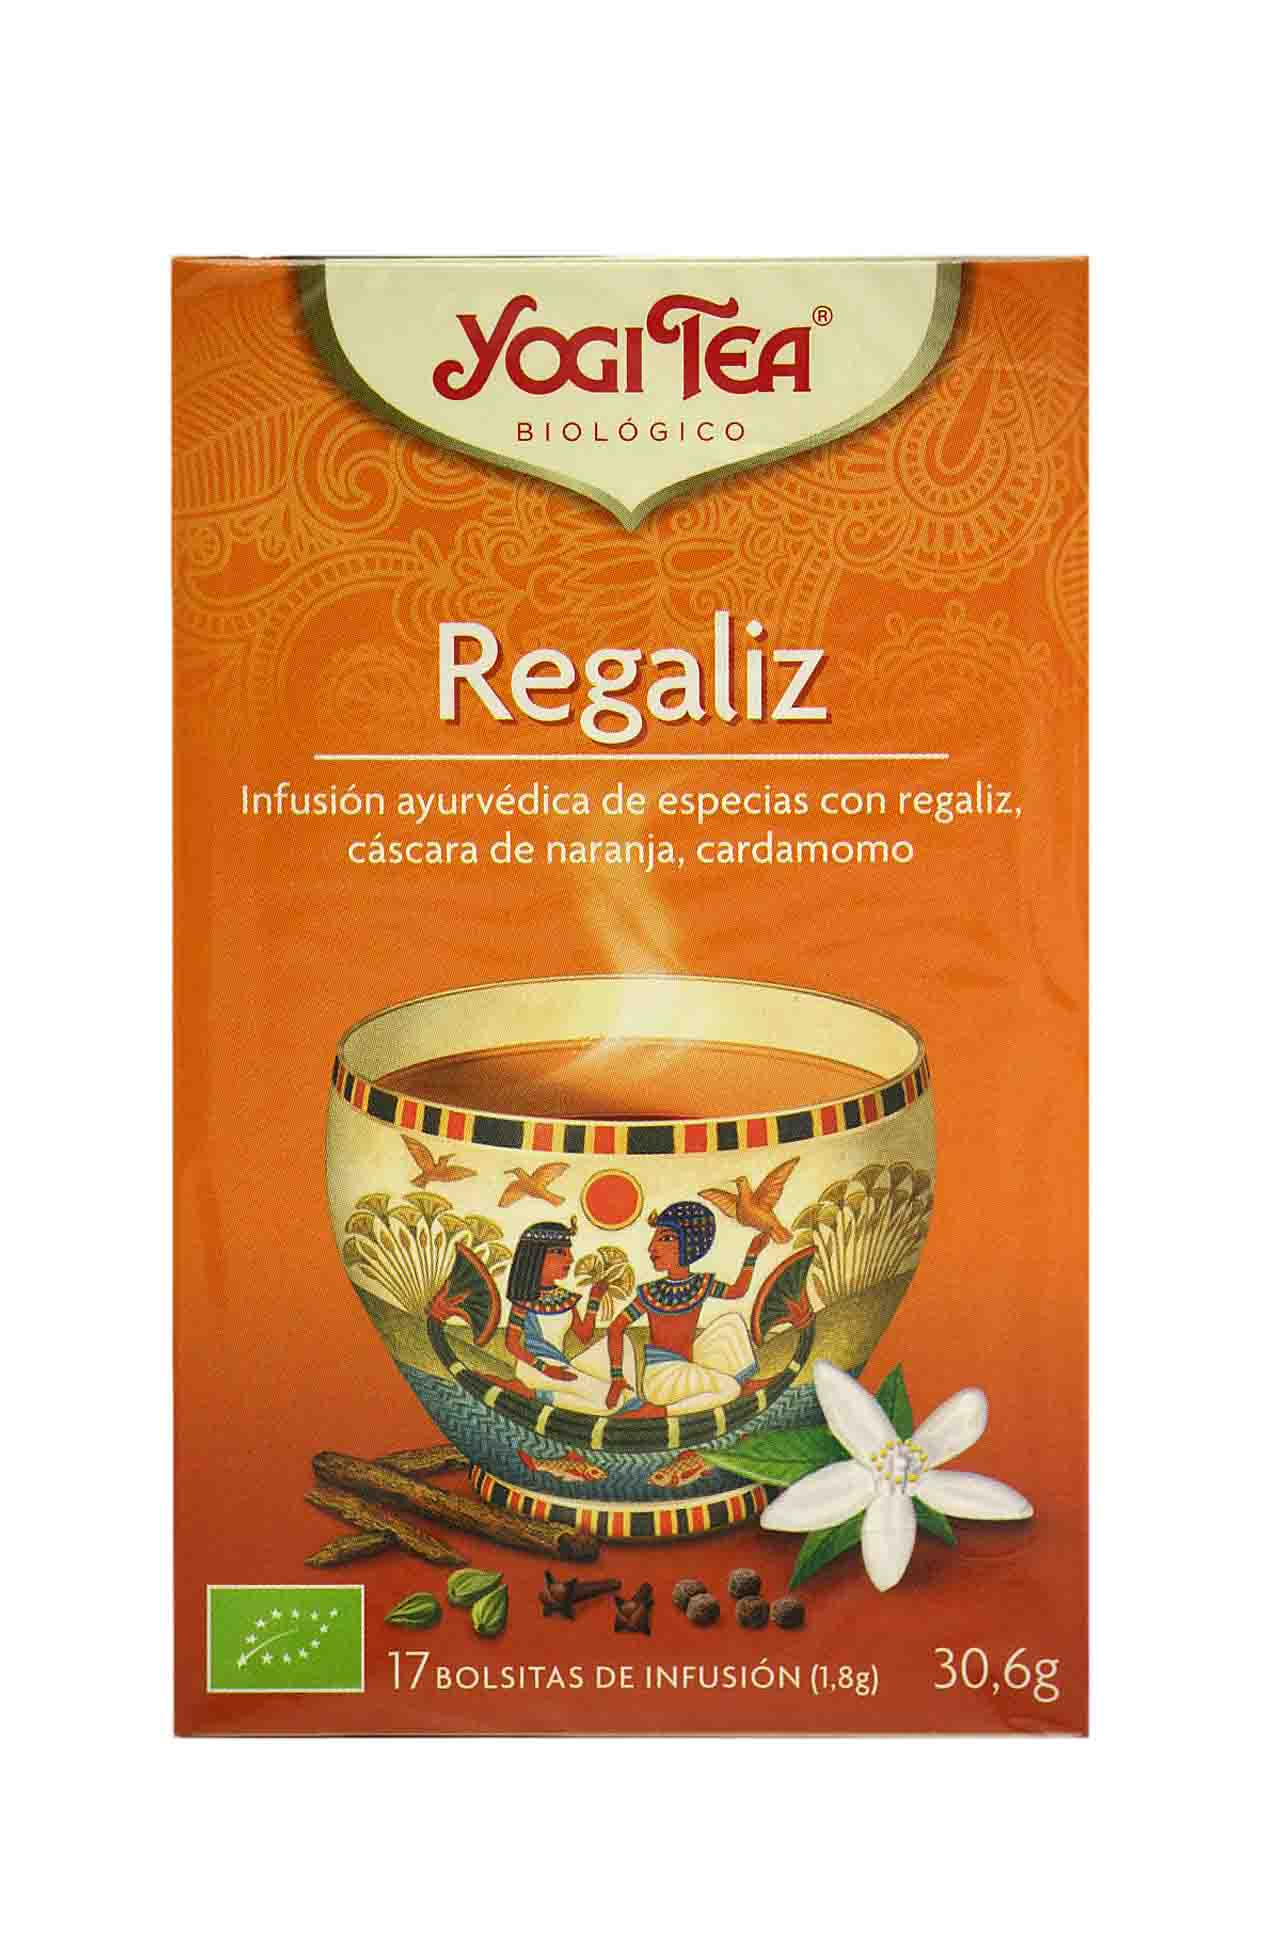 Yogui tea regaliz